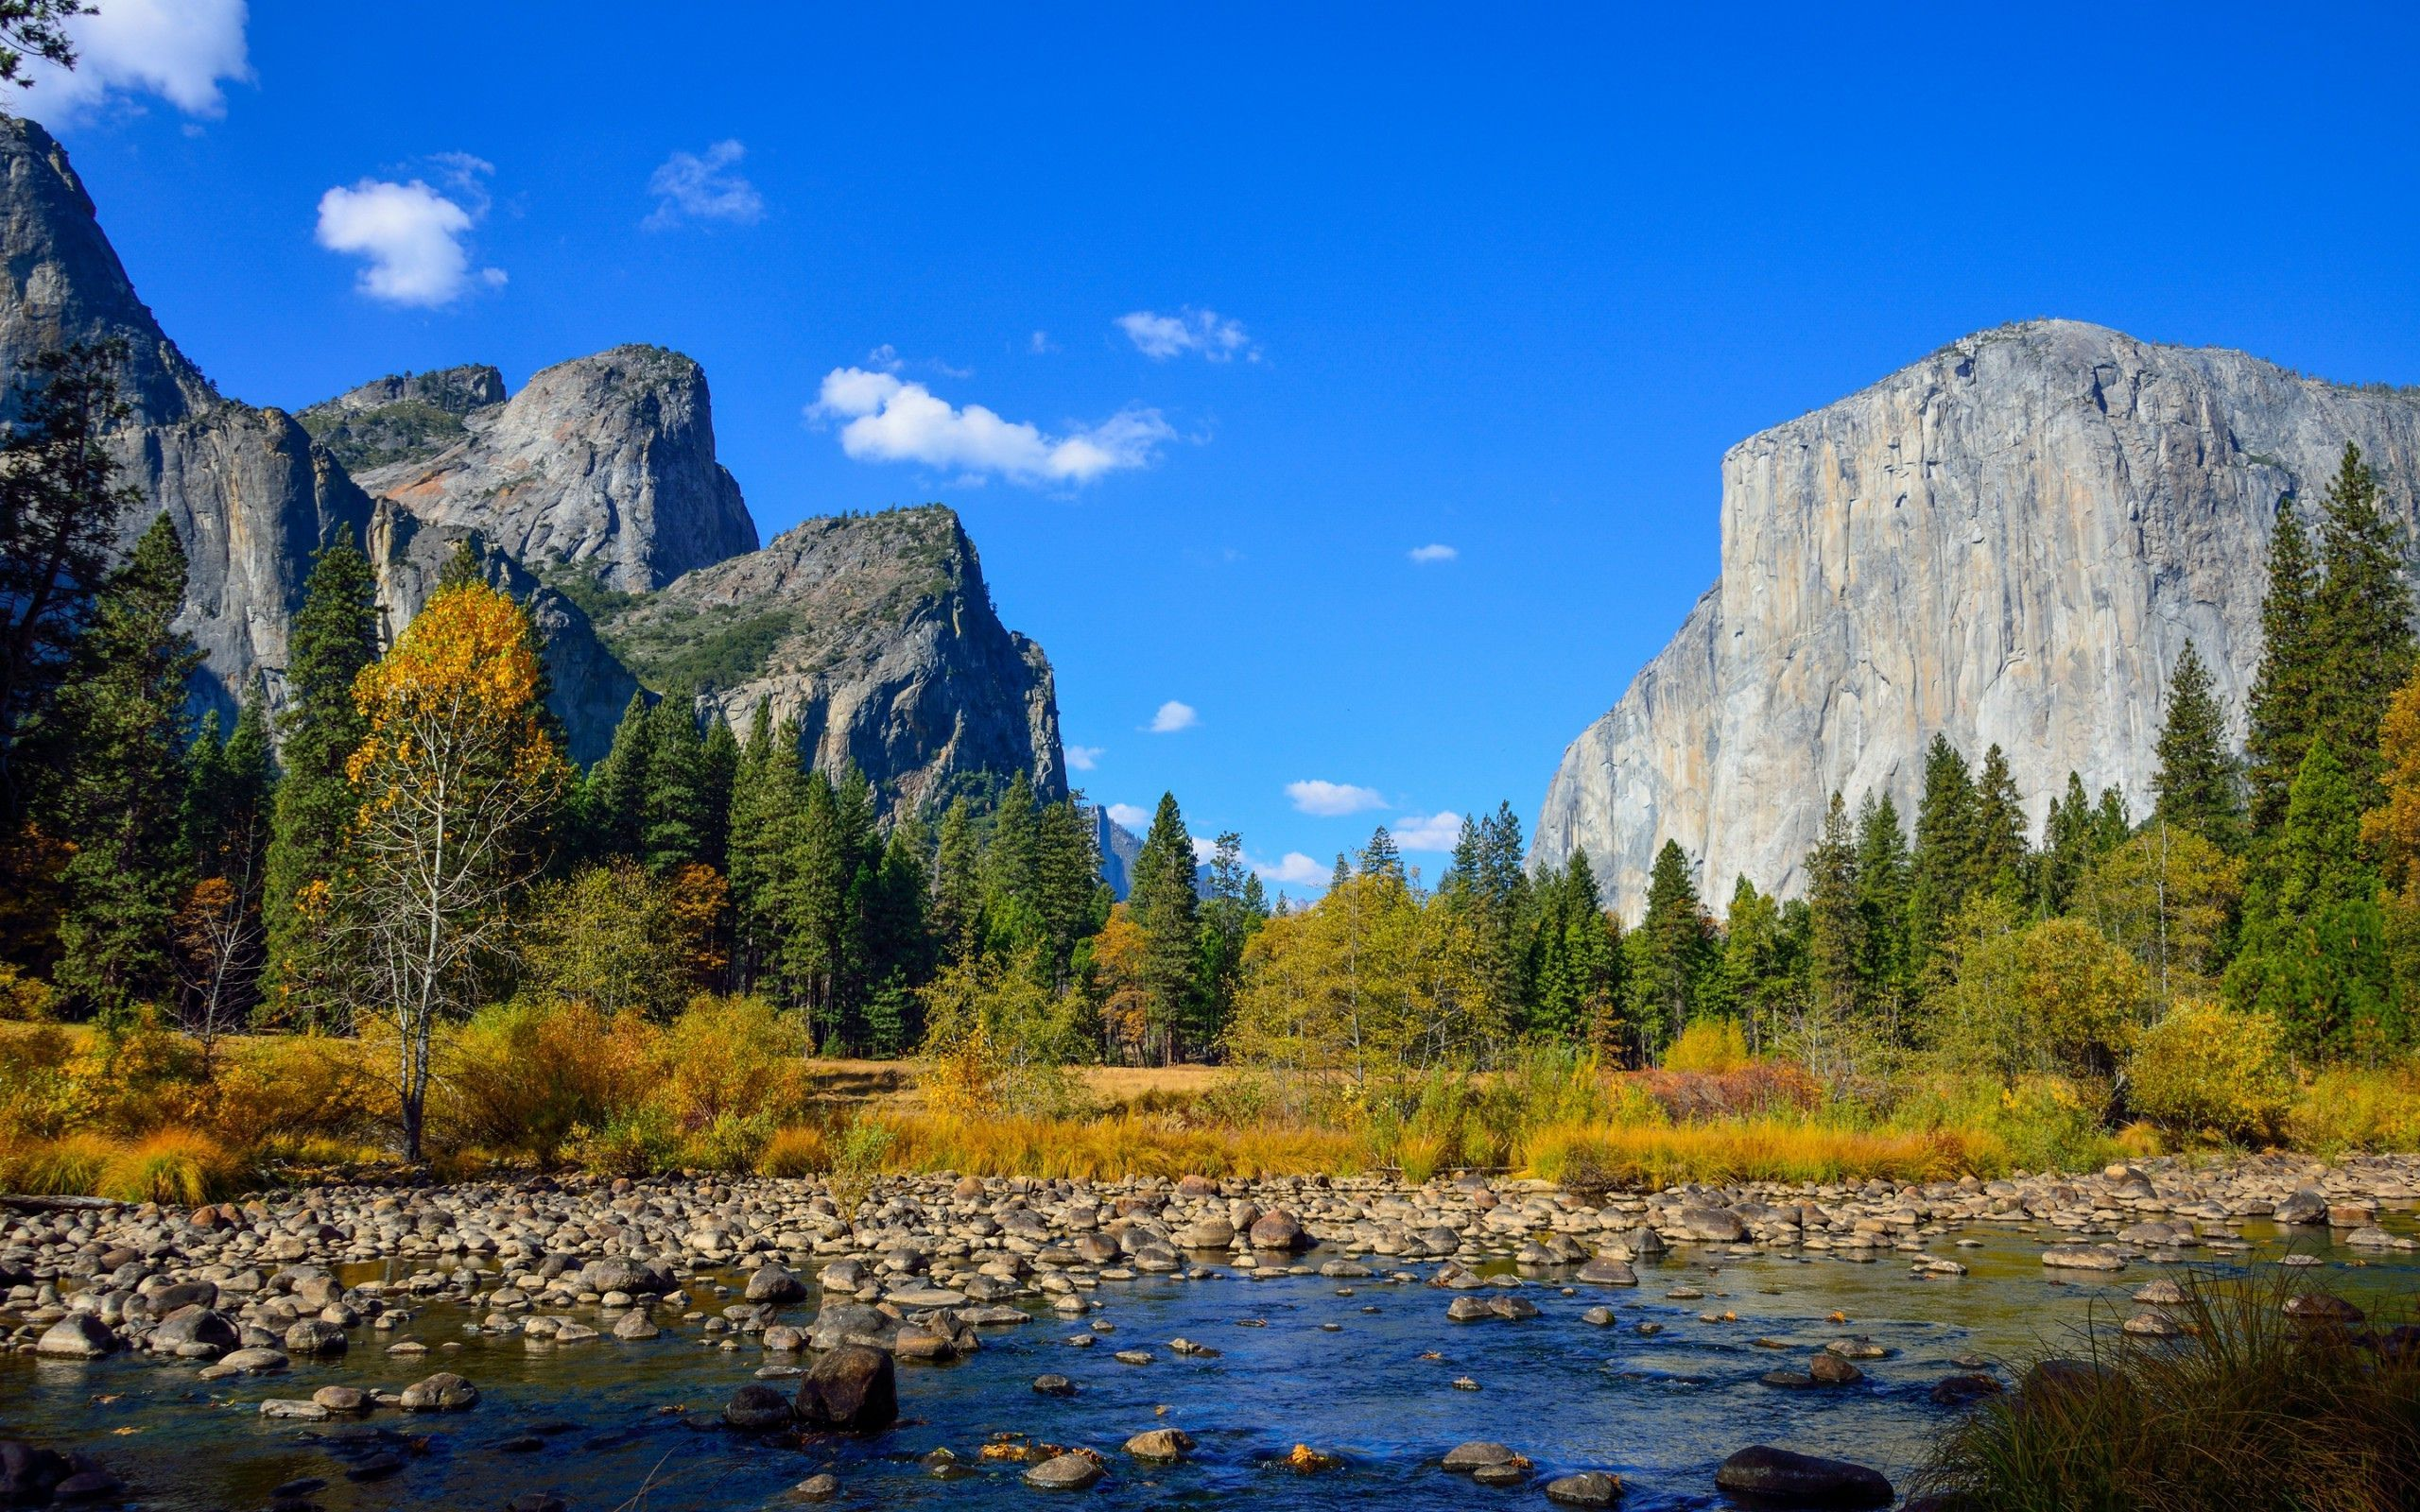 46 yosemite park wallpaper on wallpapersafari - Yosemite national park hd wallpaper ...